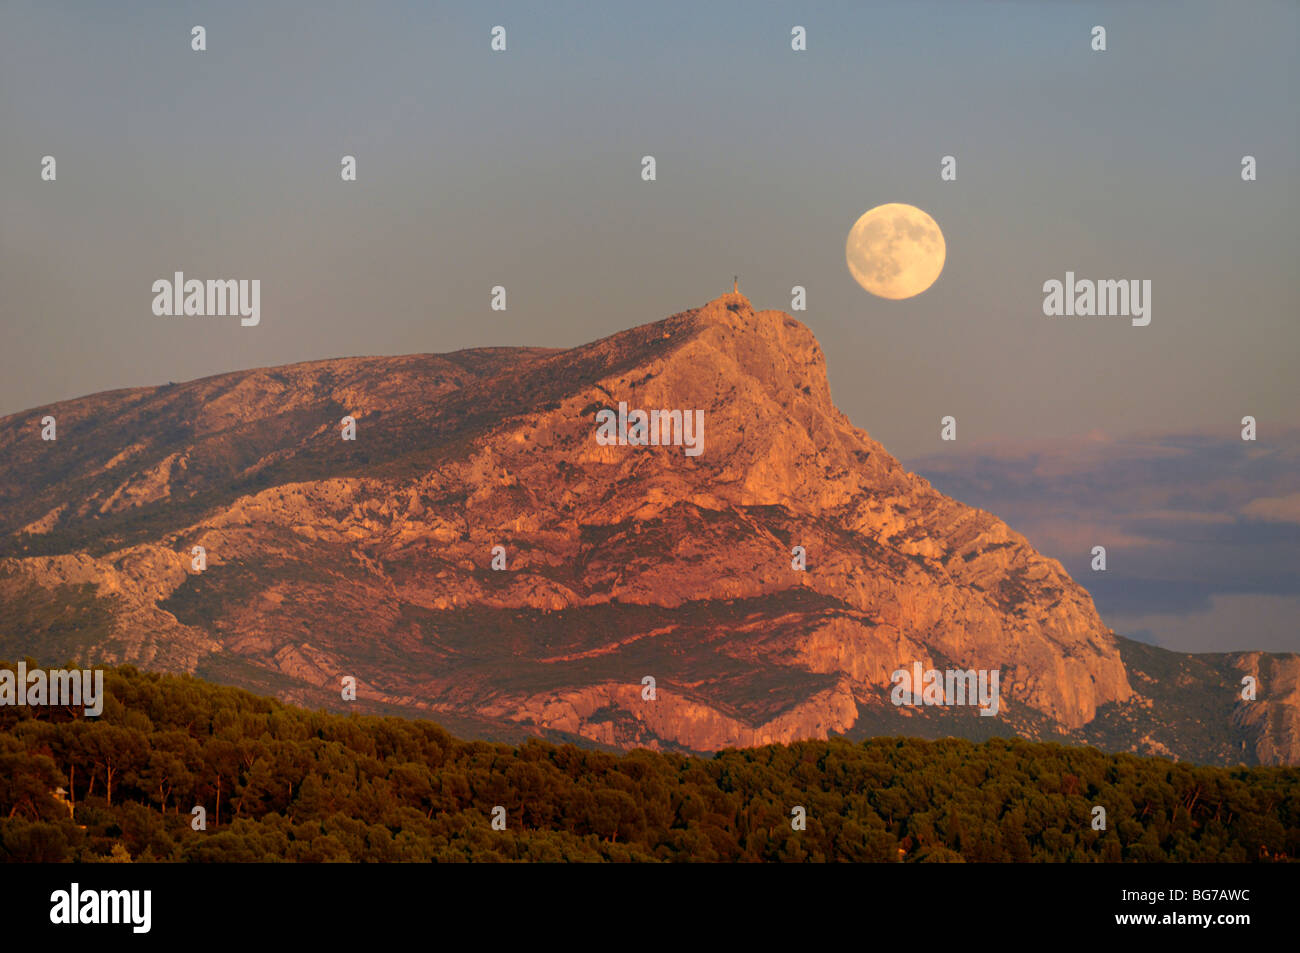 Full Moon Rising or Moon Rise over Mont Sainte Victoire Montain, near Aix-en-Provence or Aix en Provence France - Stock Image